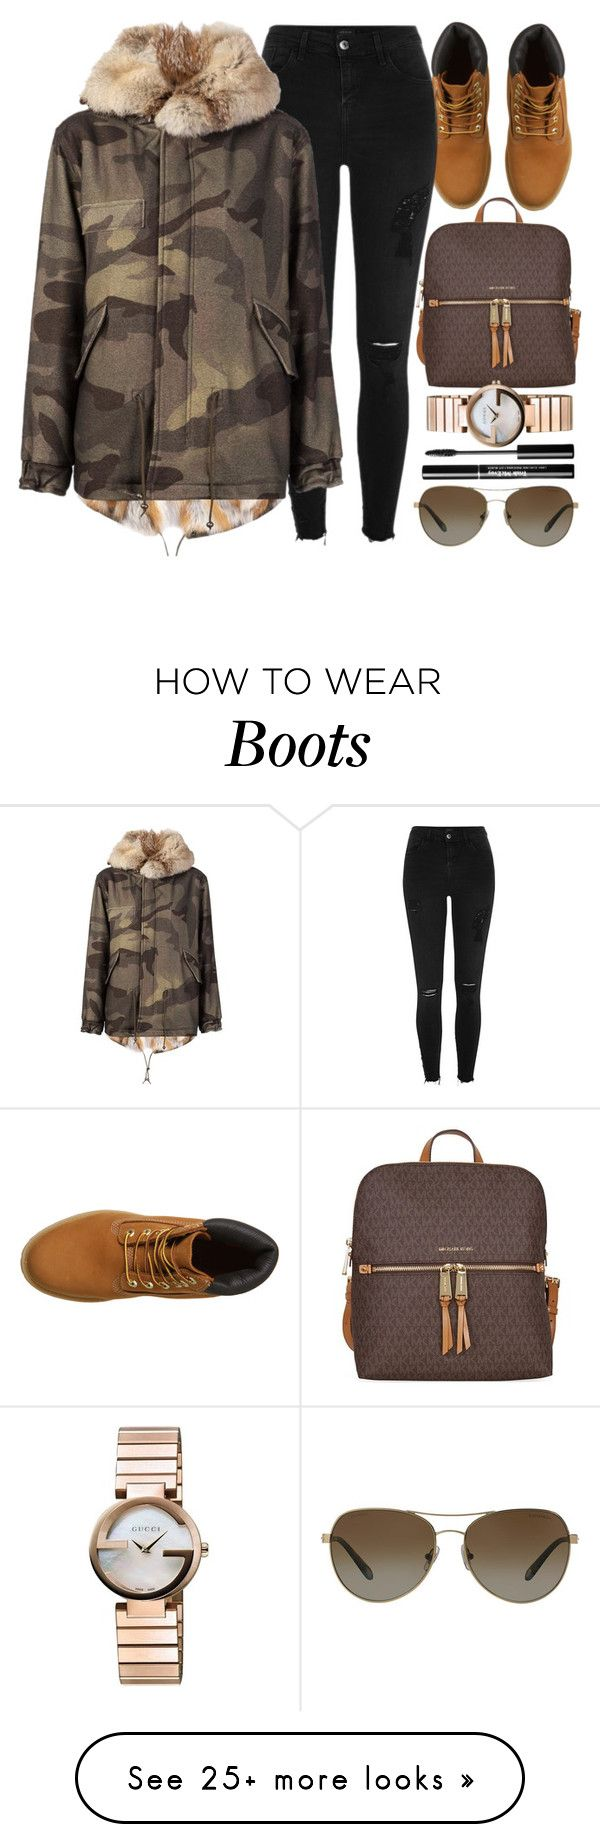 """Ten Twenty"" by monmondefou on Polyvore featuring Timberland, River Island, Mr & Mrs Italy, Gucci, Tiffany & Co., GREEN and brown"